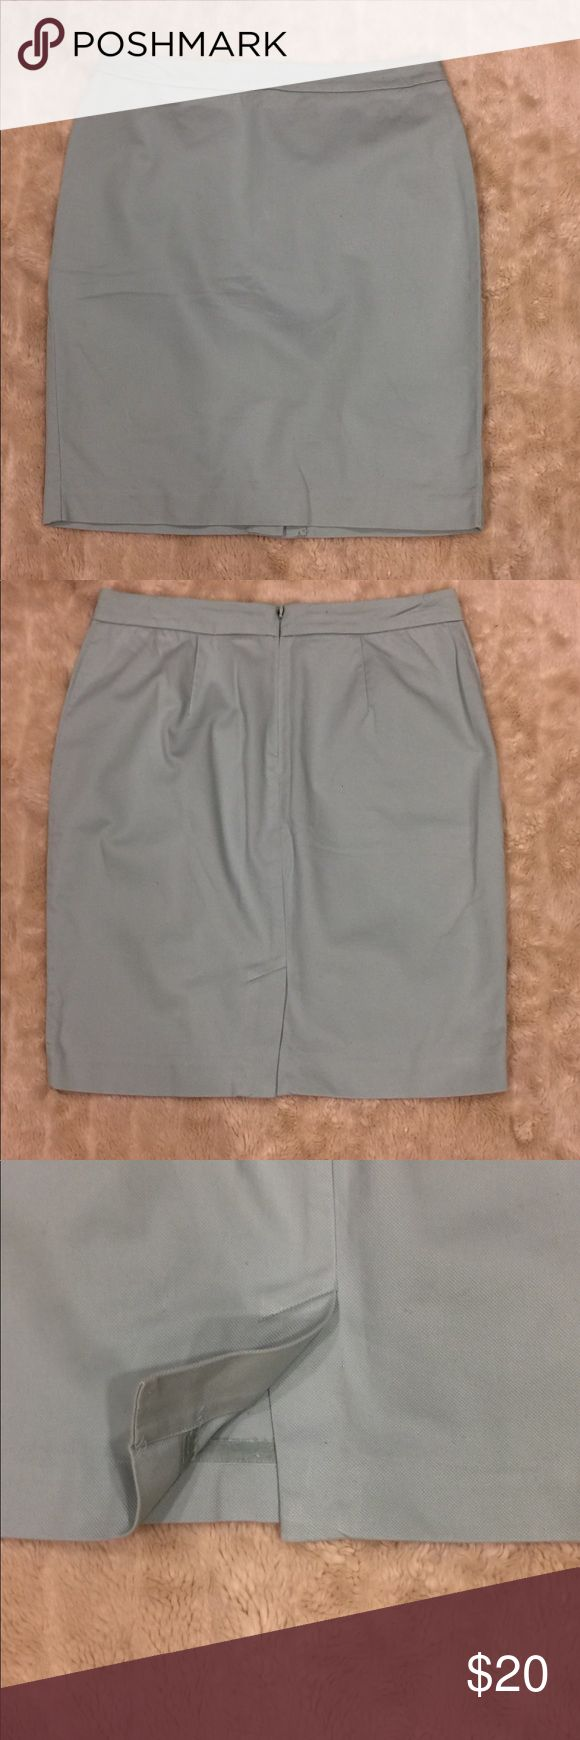 """CAbi Jade Almond pencil skirt Size 6 Mint green; 1 1/2"""" waistband; hidden back zipper w/ hook and eye closure; darting in the back for shaping; 5 1/2"""" back kick pleat; 98% cotton, 2% spandex; Waist - 32"""", Length - 22 1/2"""" CAbi Skirts Pencil"""